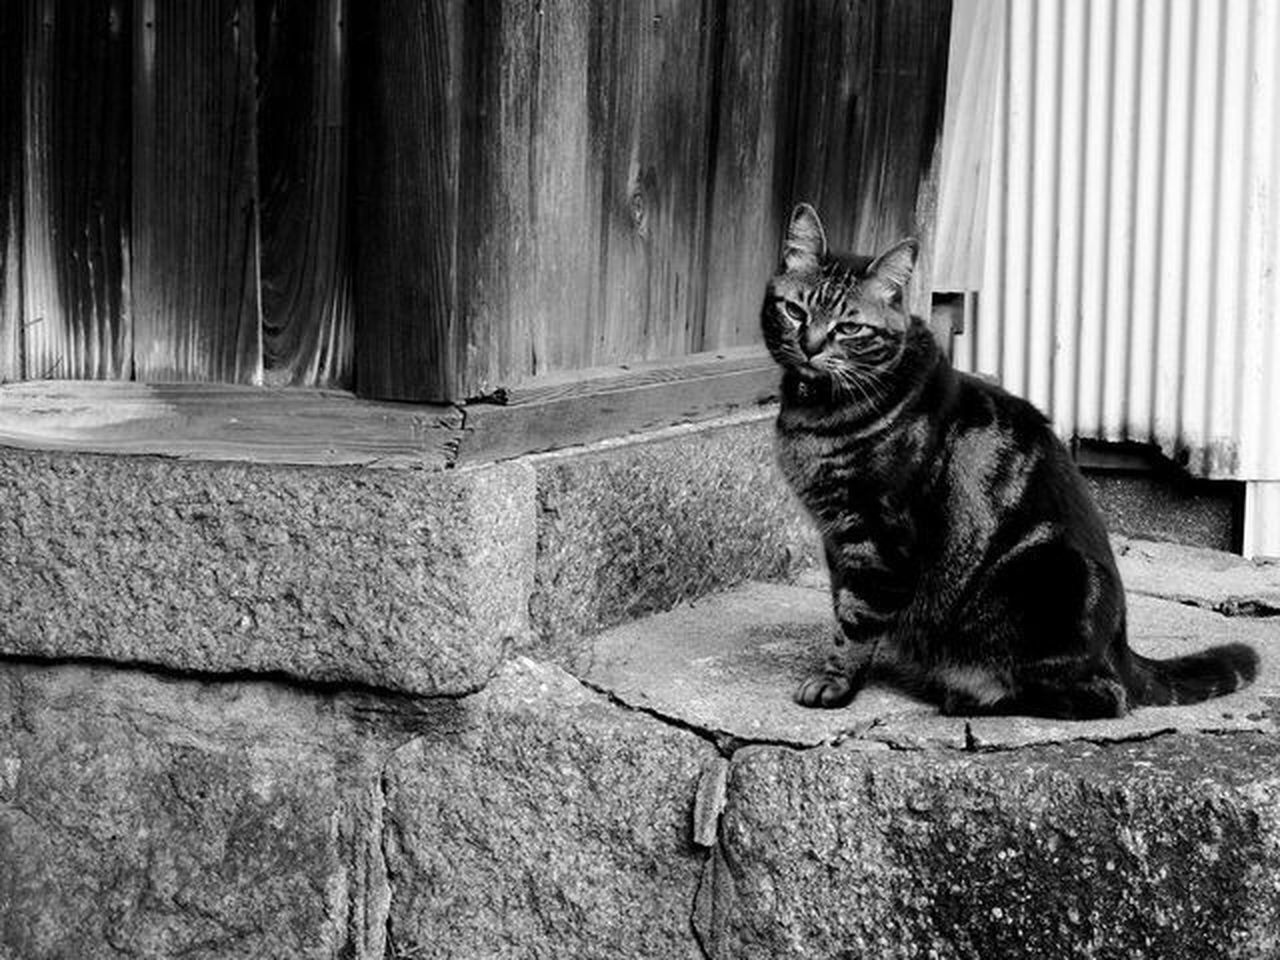 The Great Outdoors - 2017 EyeEm Awards The Street Photographer - 2017 EyeEm Awards The Photojournalist - 2017 EyeEm Awards Animal Themes Wildcat Cattown One Animal Oldtown Looking At Camera Portrait No People Nikonphotography Live For The Story 세계 NoPeopleAround Alone Monochrome Blackandwhite Hiroshima Onomichi 尾道 Exploring EyeEmNewHere Place Of Heart Countryside